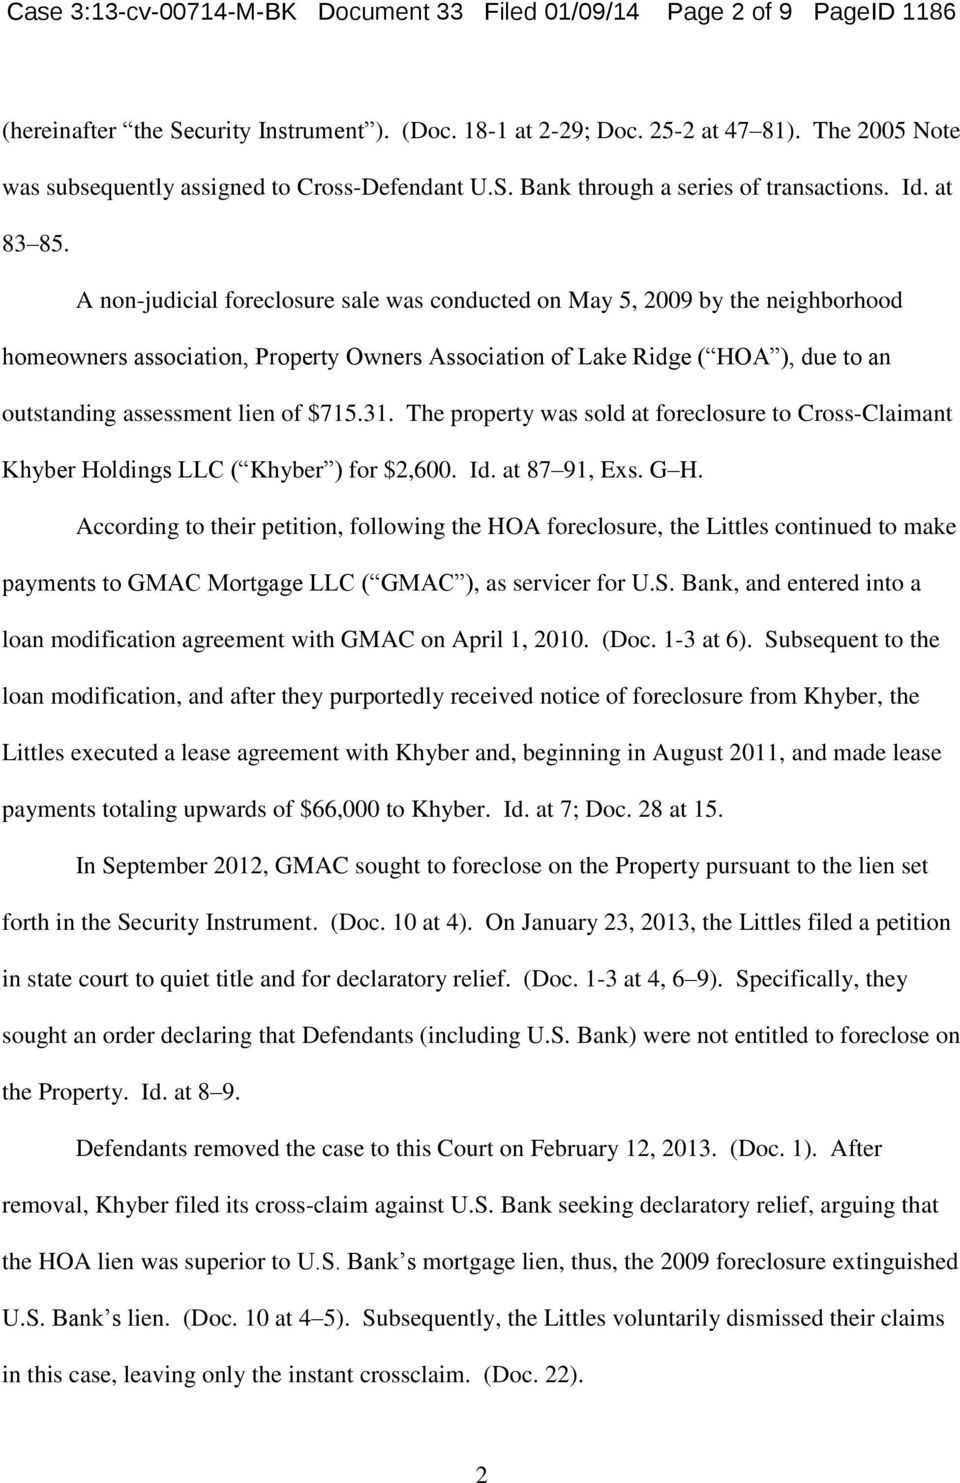 A non-judicial foreclosure sale was conducted on May 5, 2009 by the neighborhood homeowners association, Property Owners Association of Lake Ridge ( HOA ), due to an outstanding assessment lien of